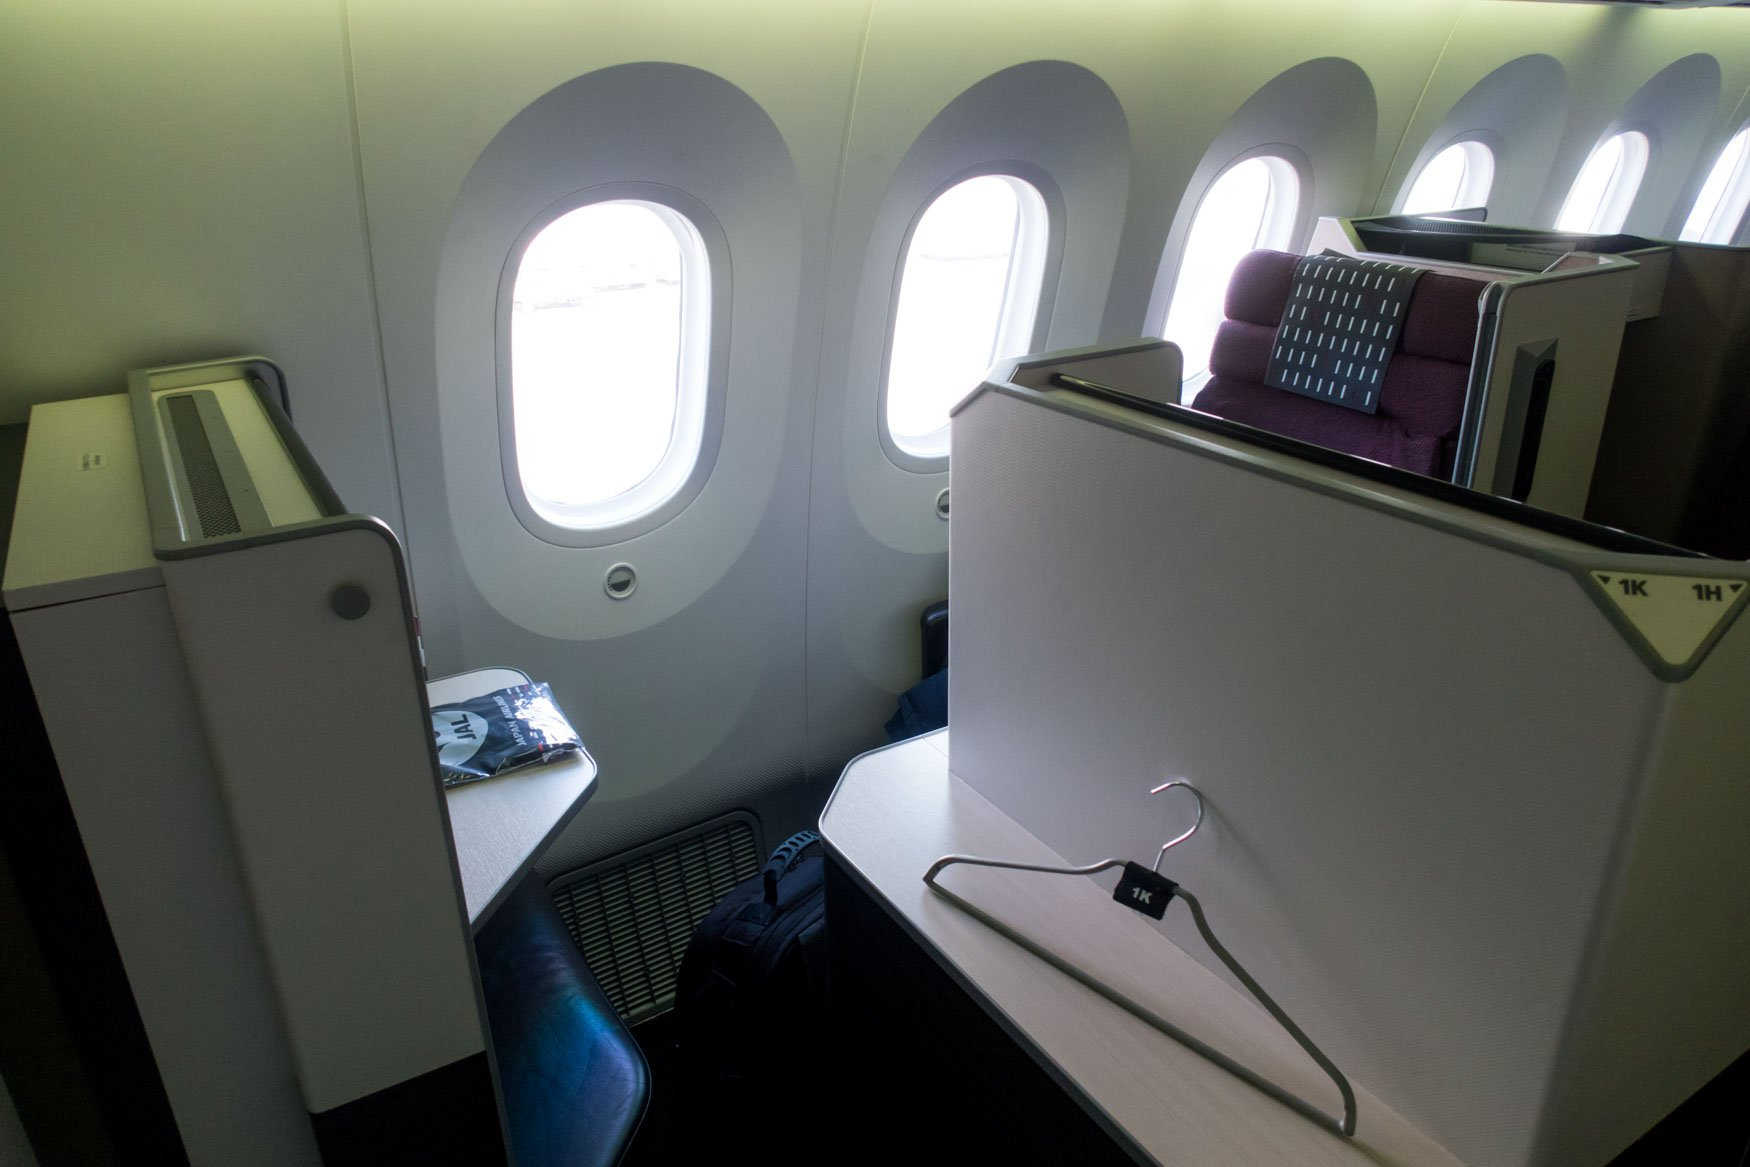 Entrance into JAL's Business Class Seat